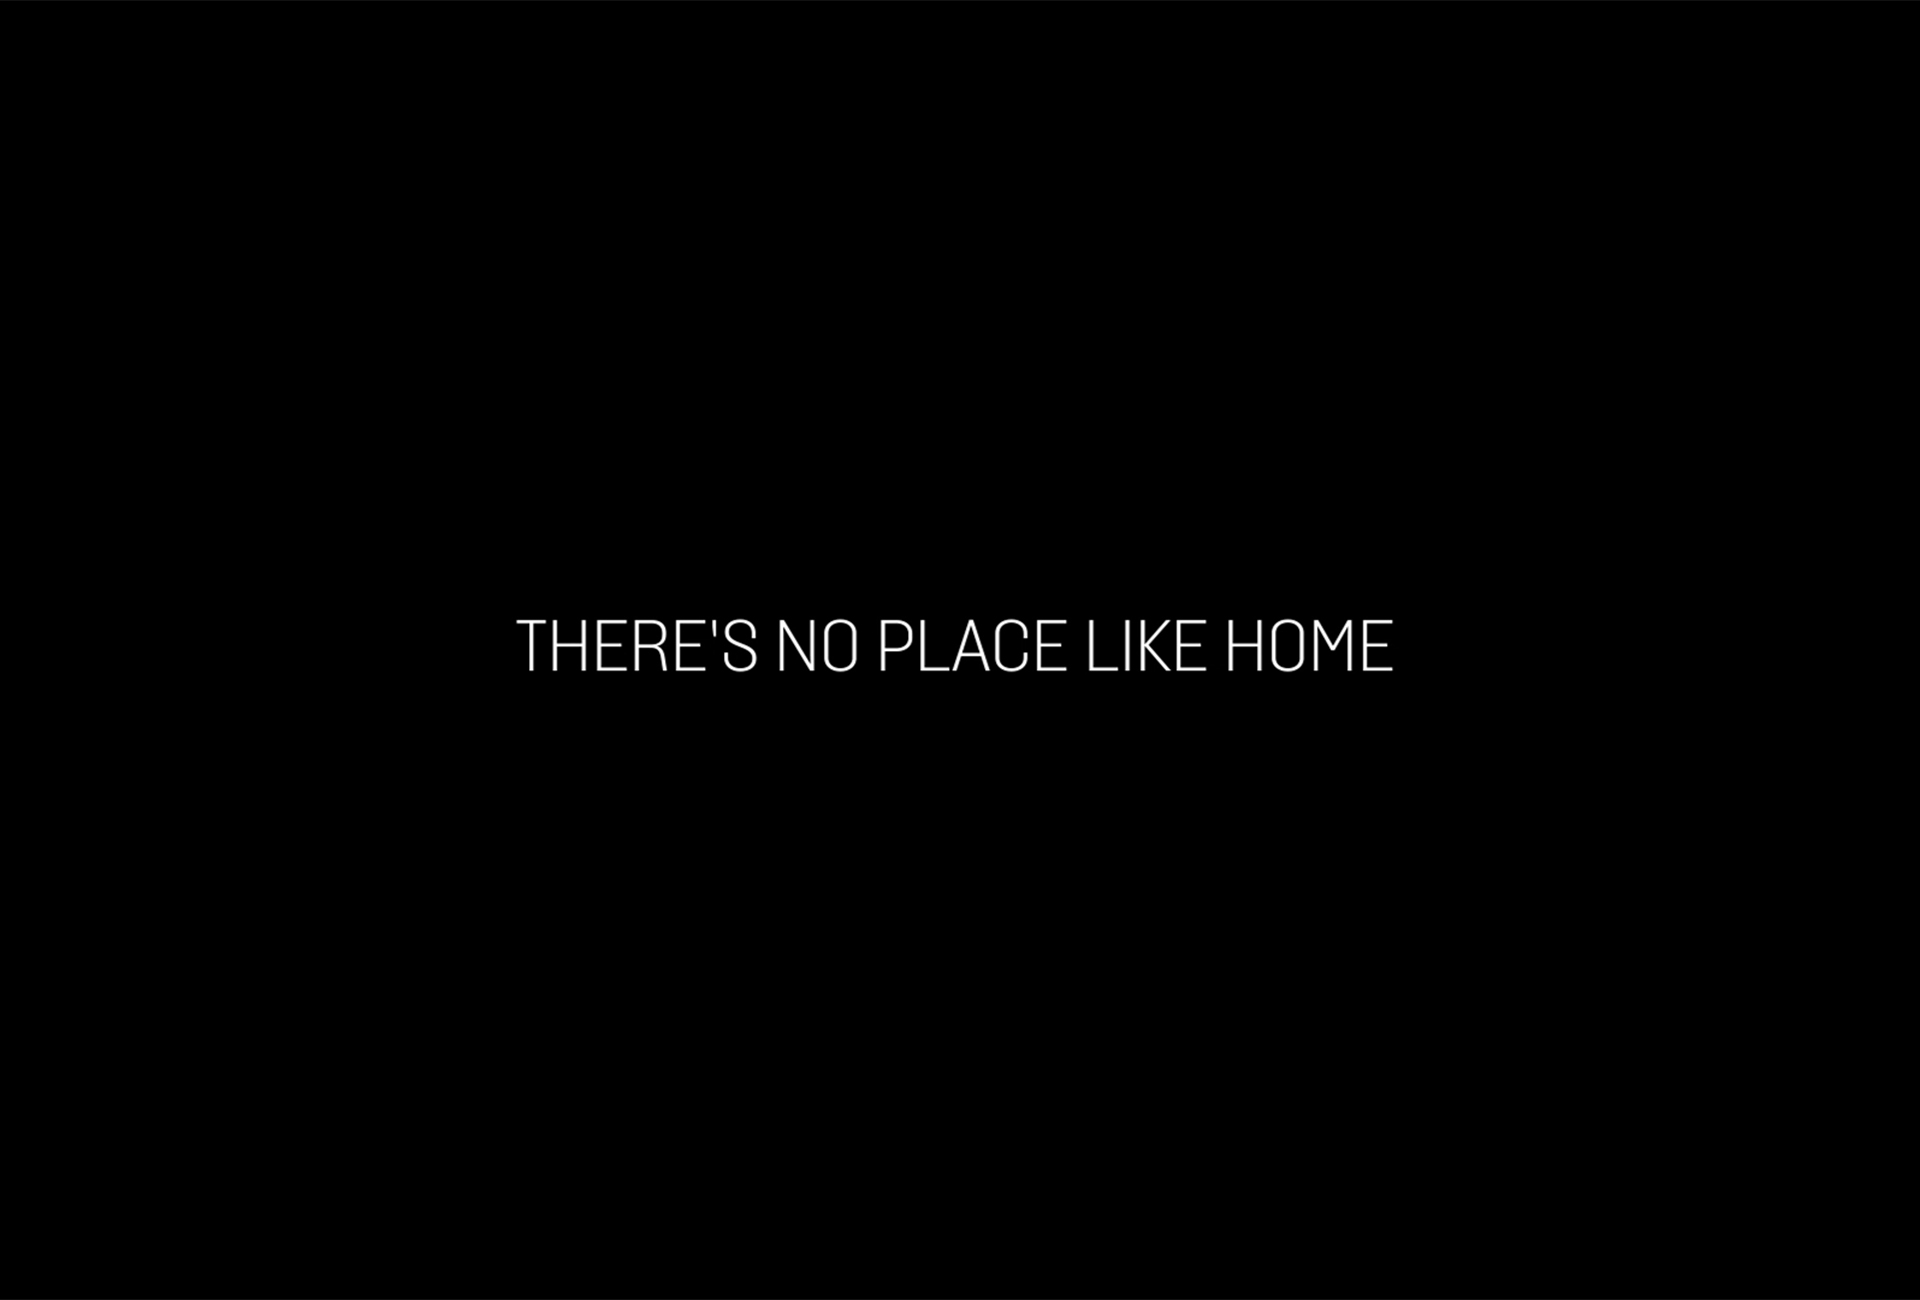 CHRISTMAS 2020 THERE'S NO PLACE LIKE HOME